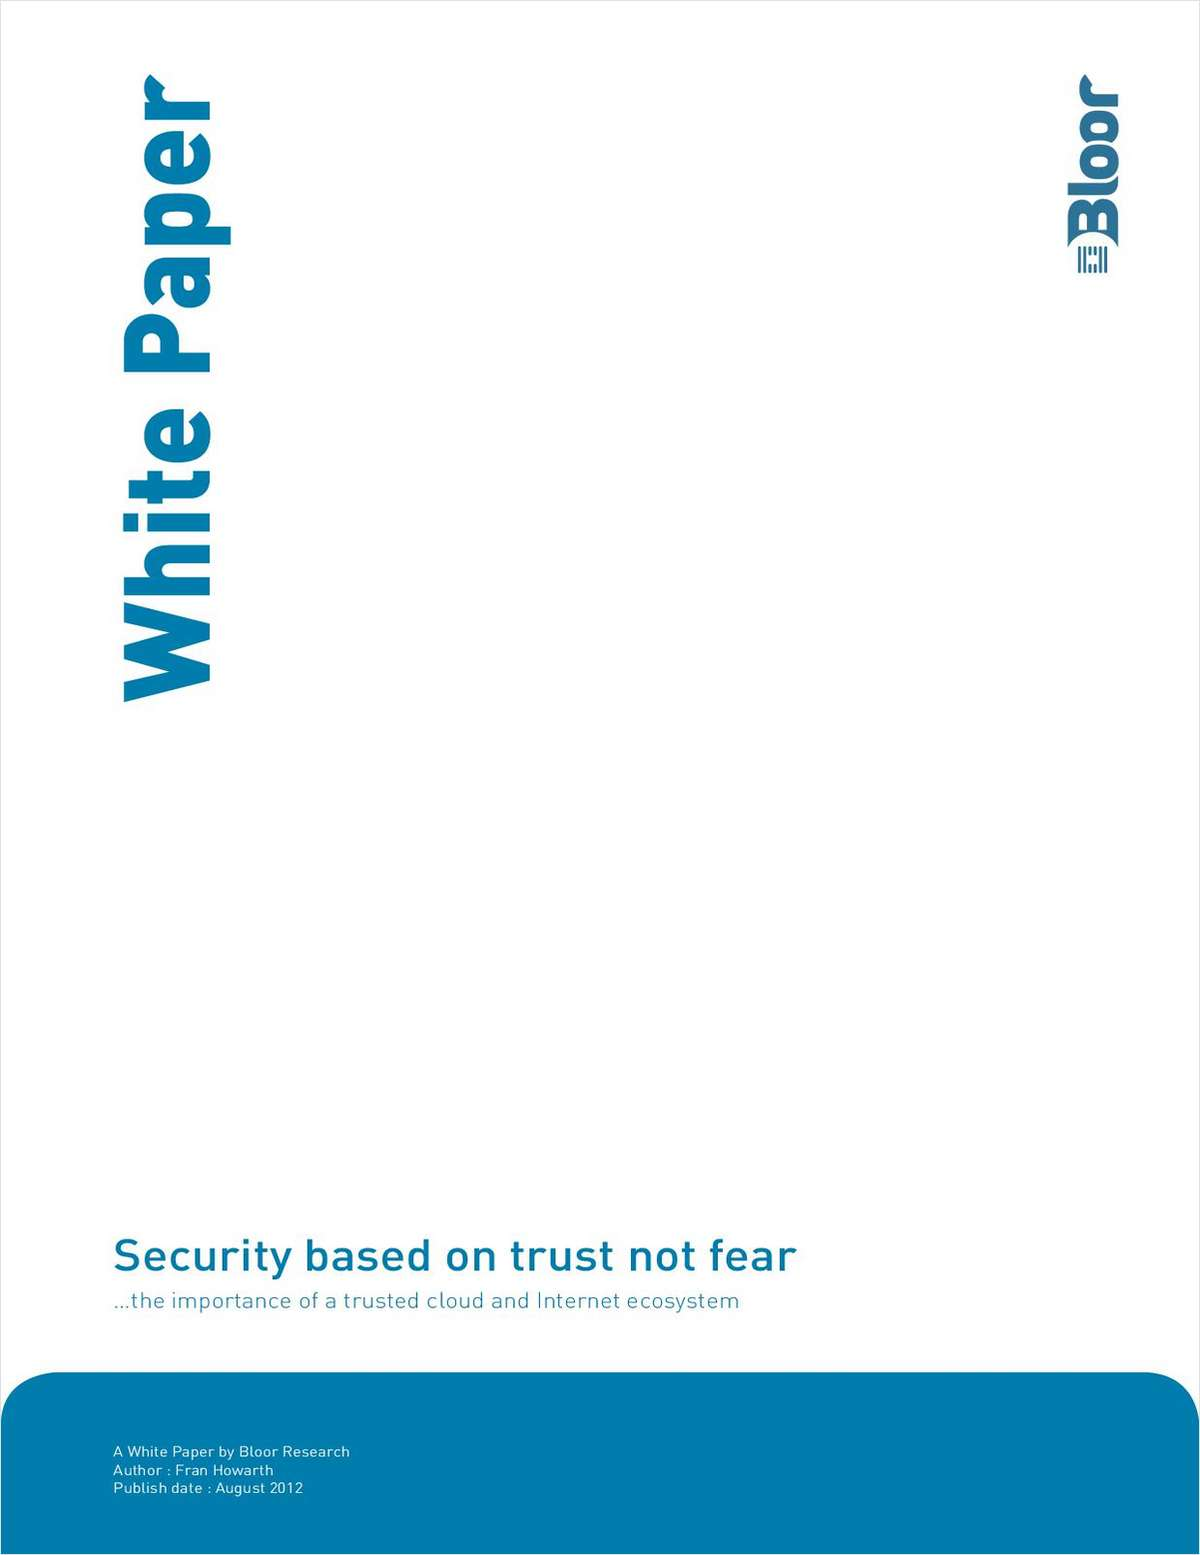 Security Based on Trust, Not Fear